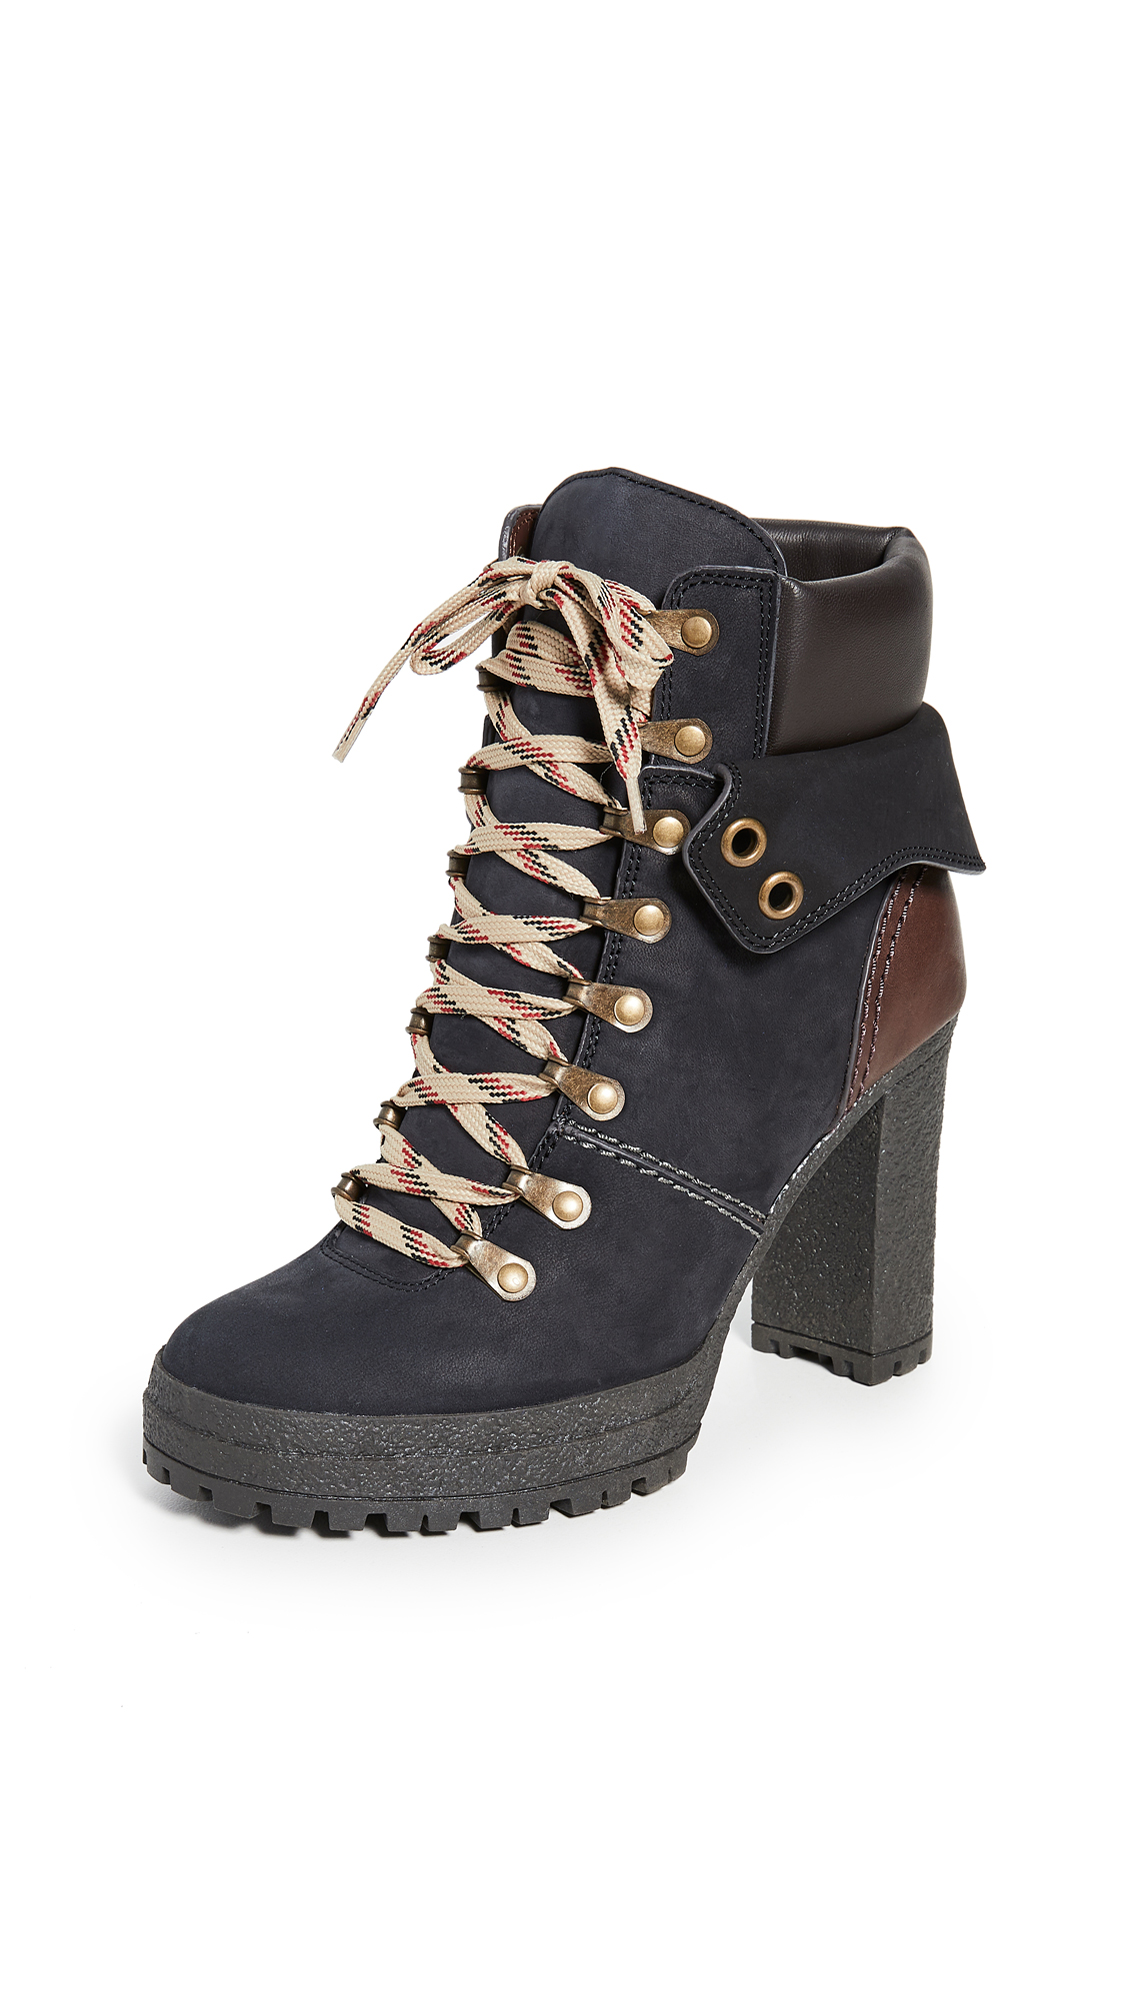 Buy See by Chloe Lace Up Boots online, shop See by Chloe